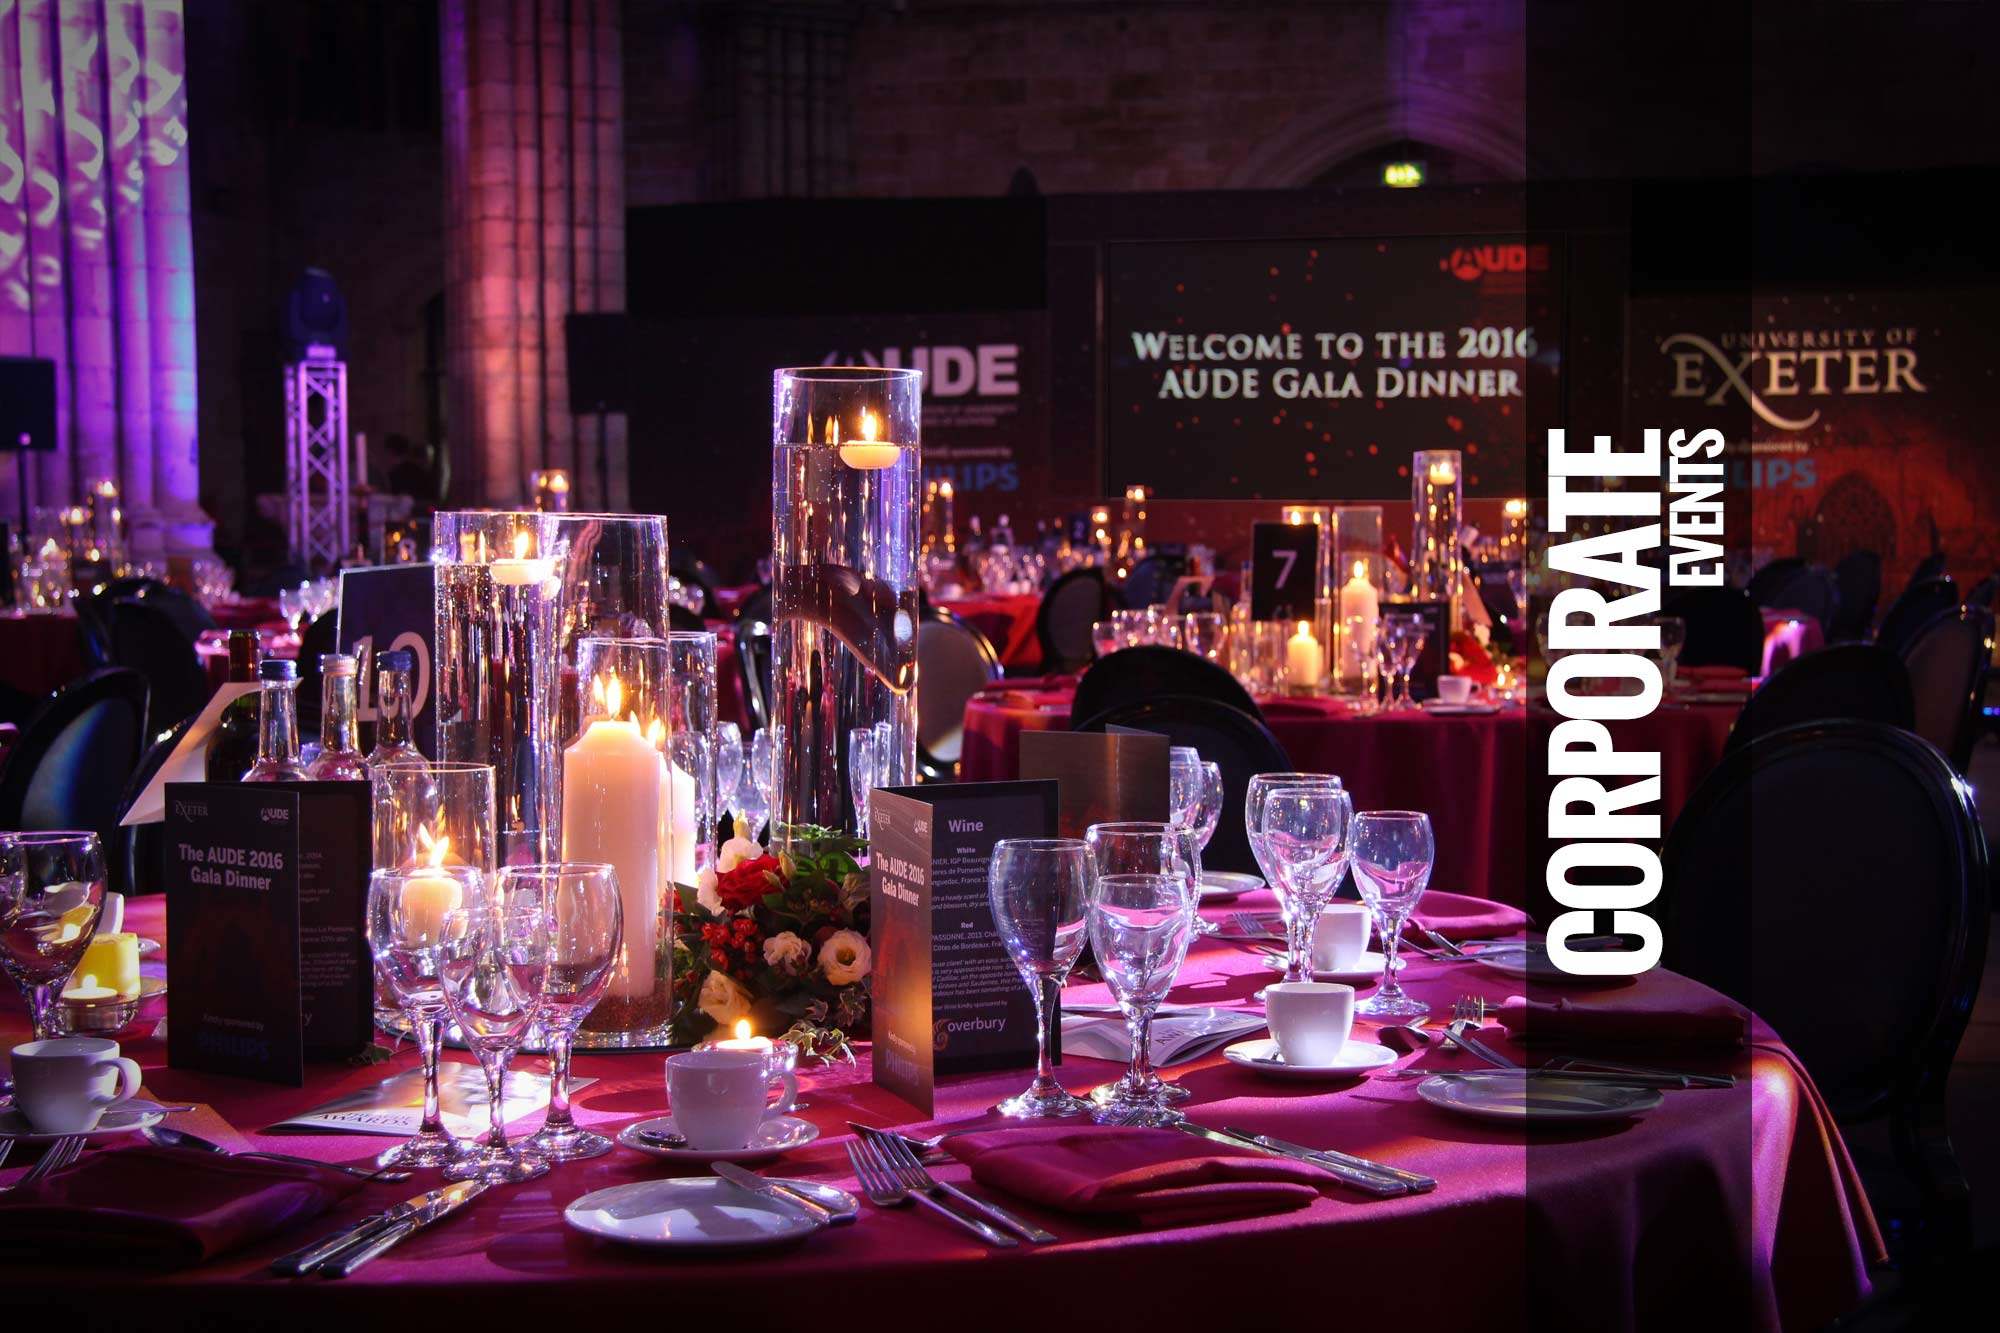 Corporate parties or events